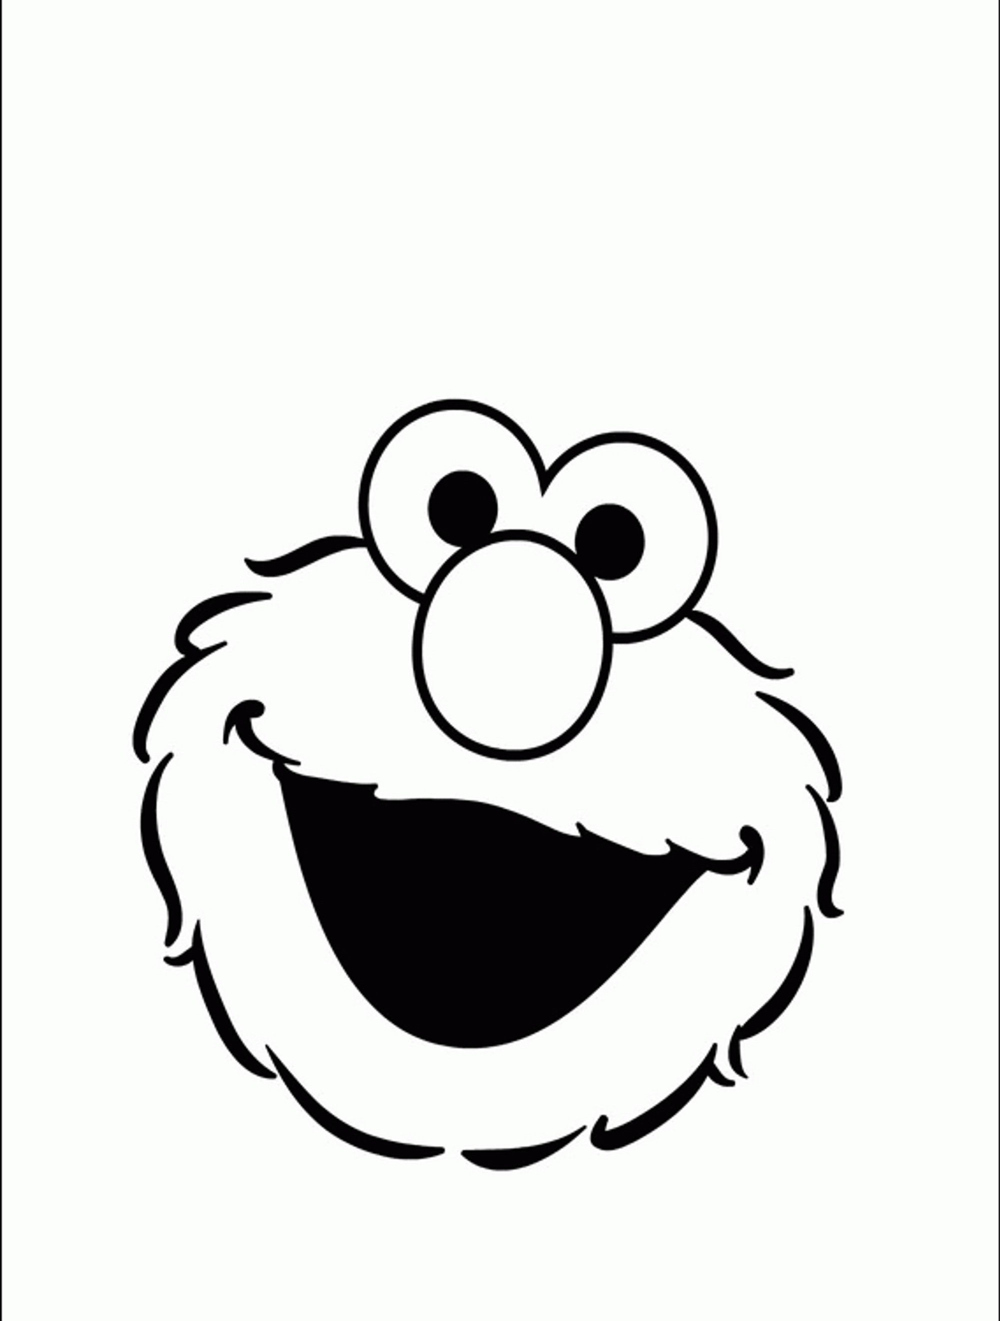 elmo coloring pages printable free printable elmo face template clipart best pages elmo coloring printable